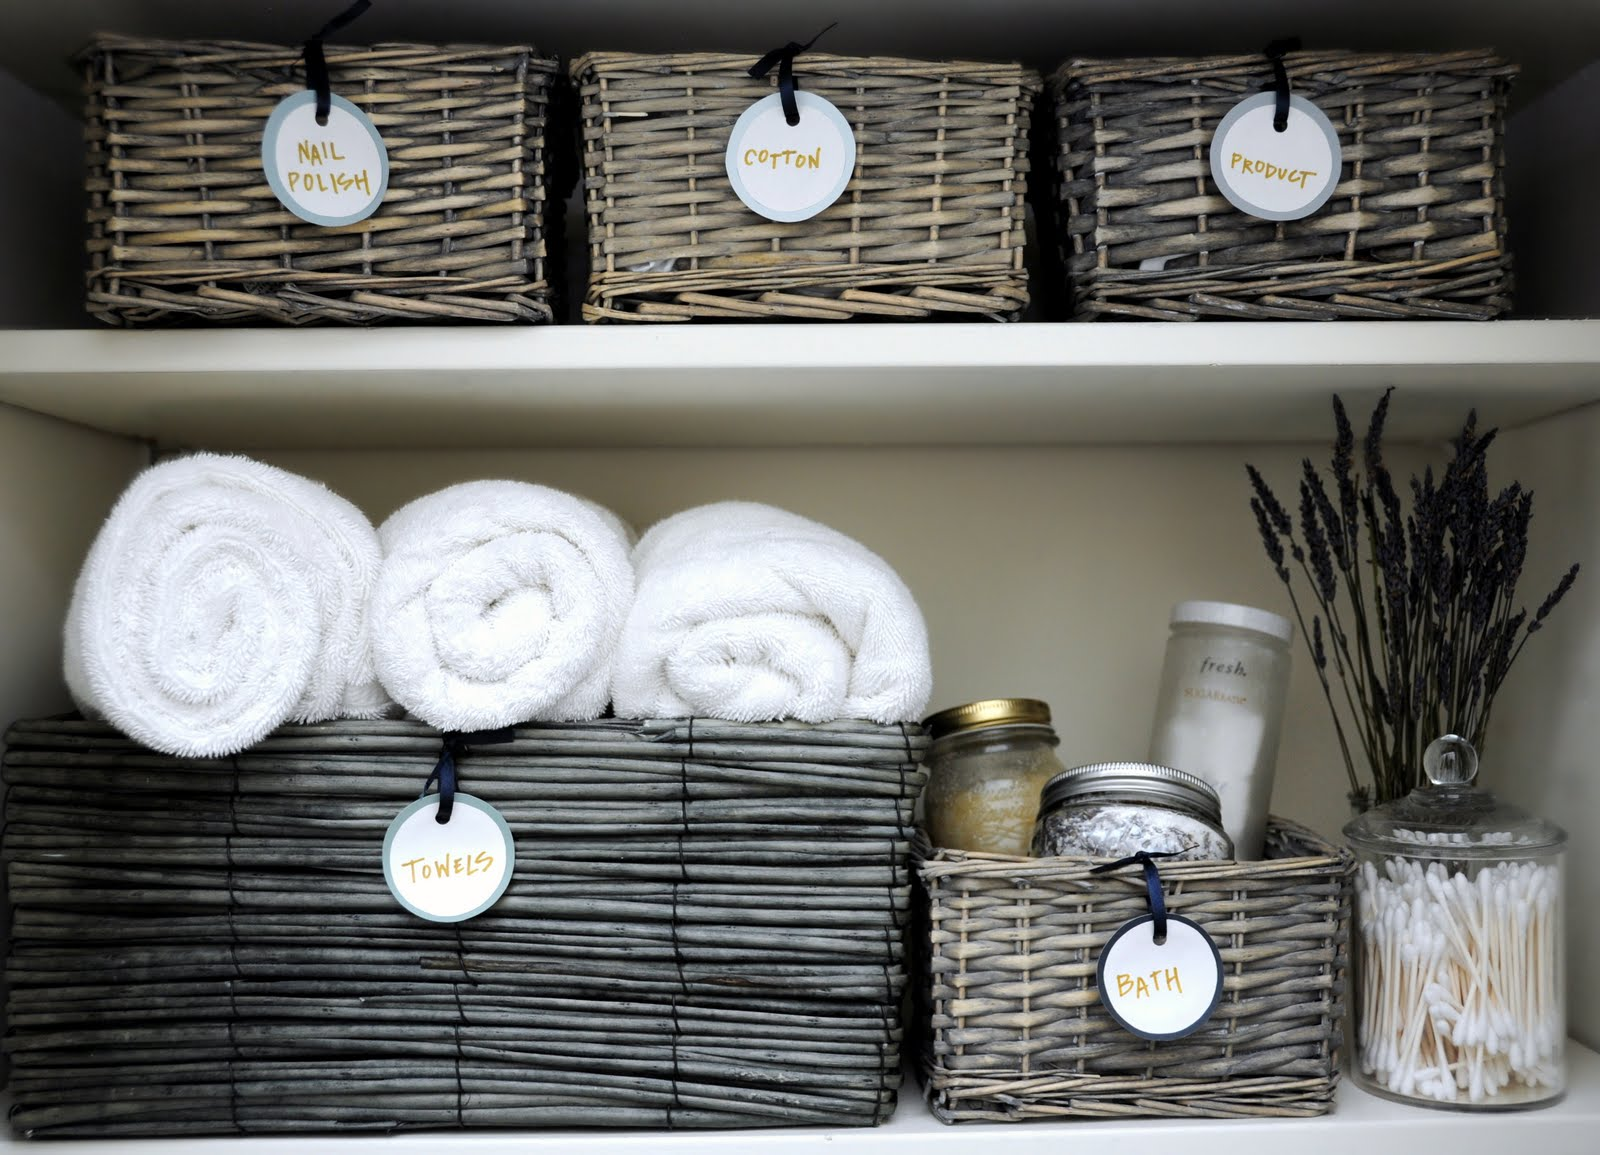 how to organize linen closet: declutter, sort by category, and store things in storage baskets with labels